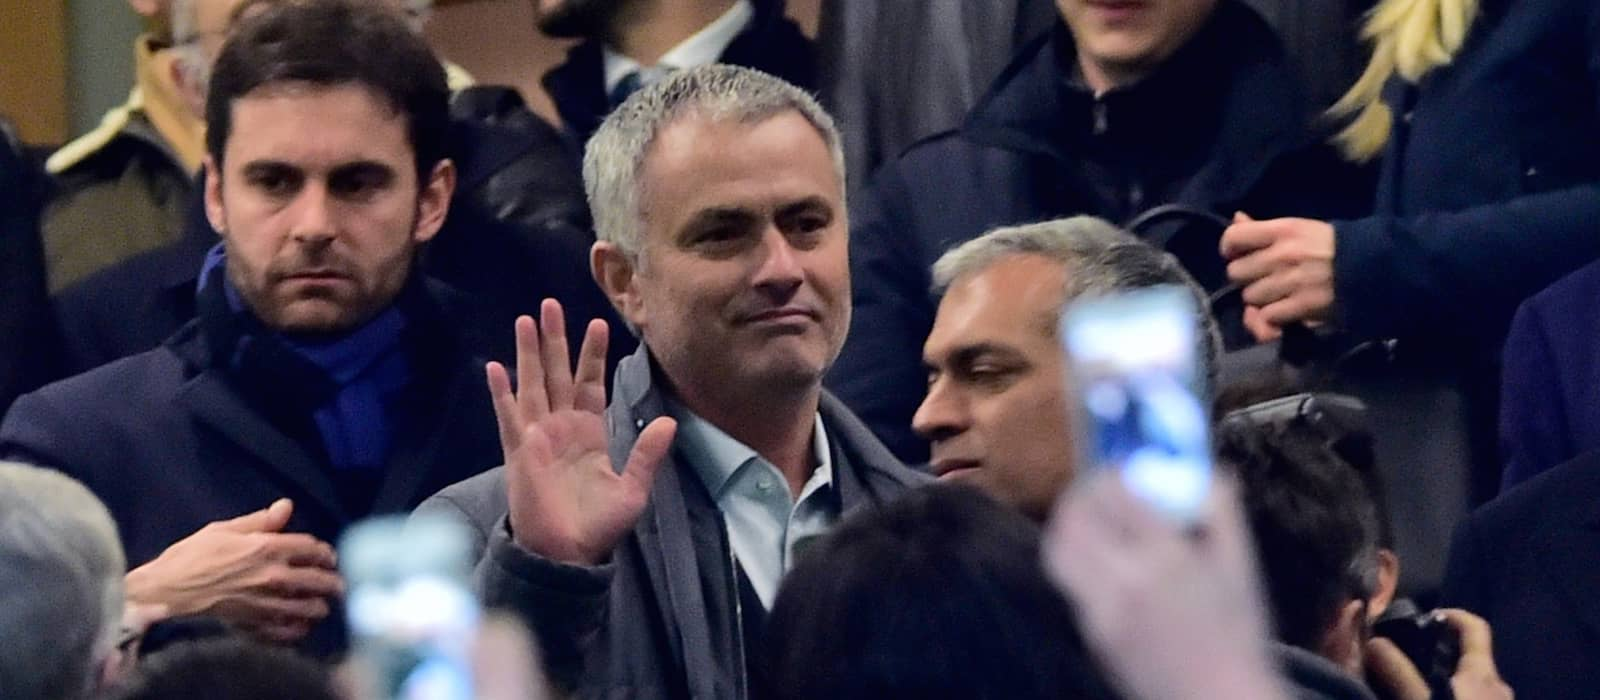 Manchester United news round-up including Mourinho, Varane and De Gea